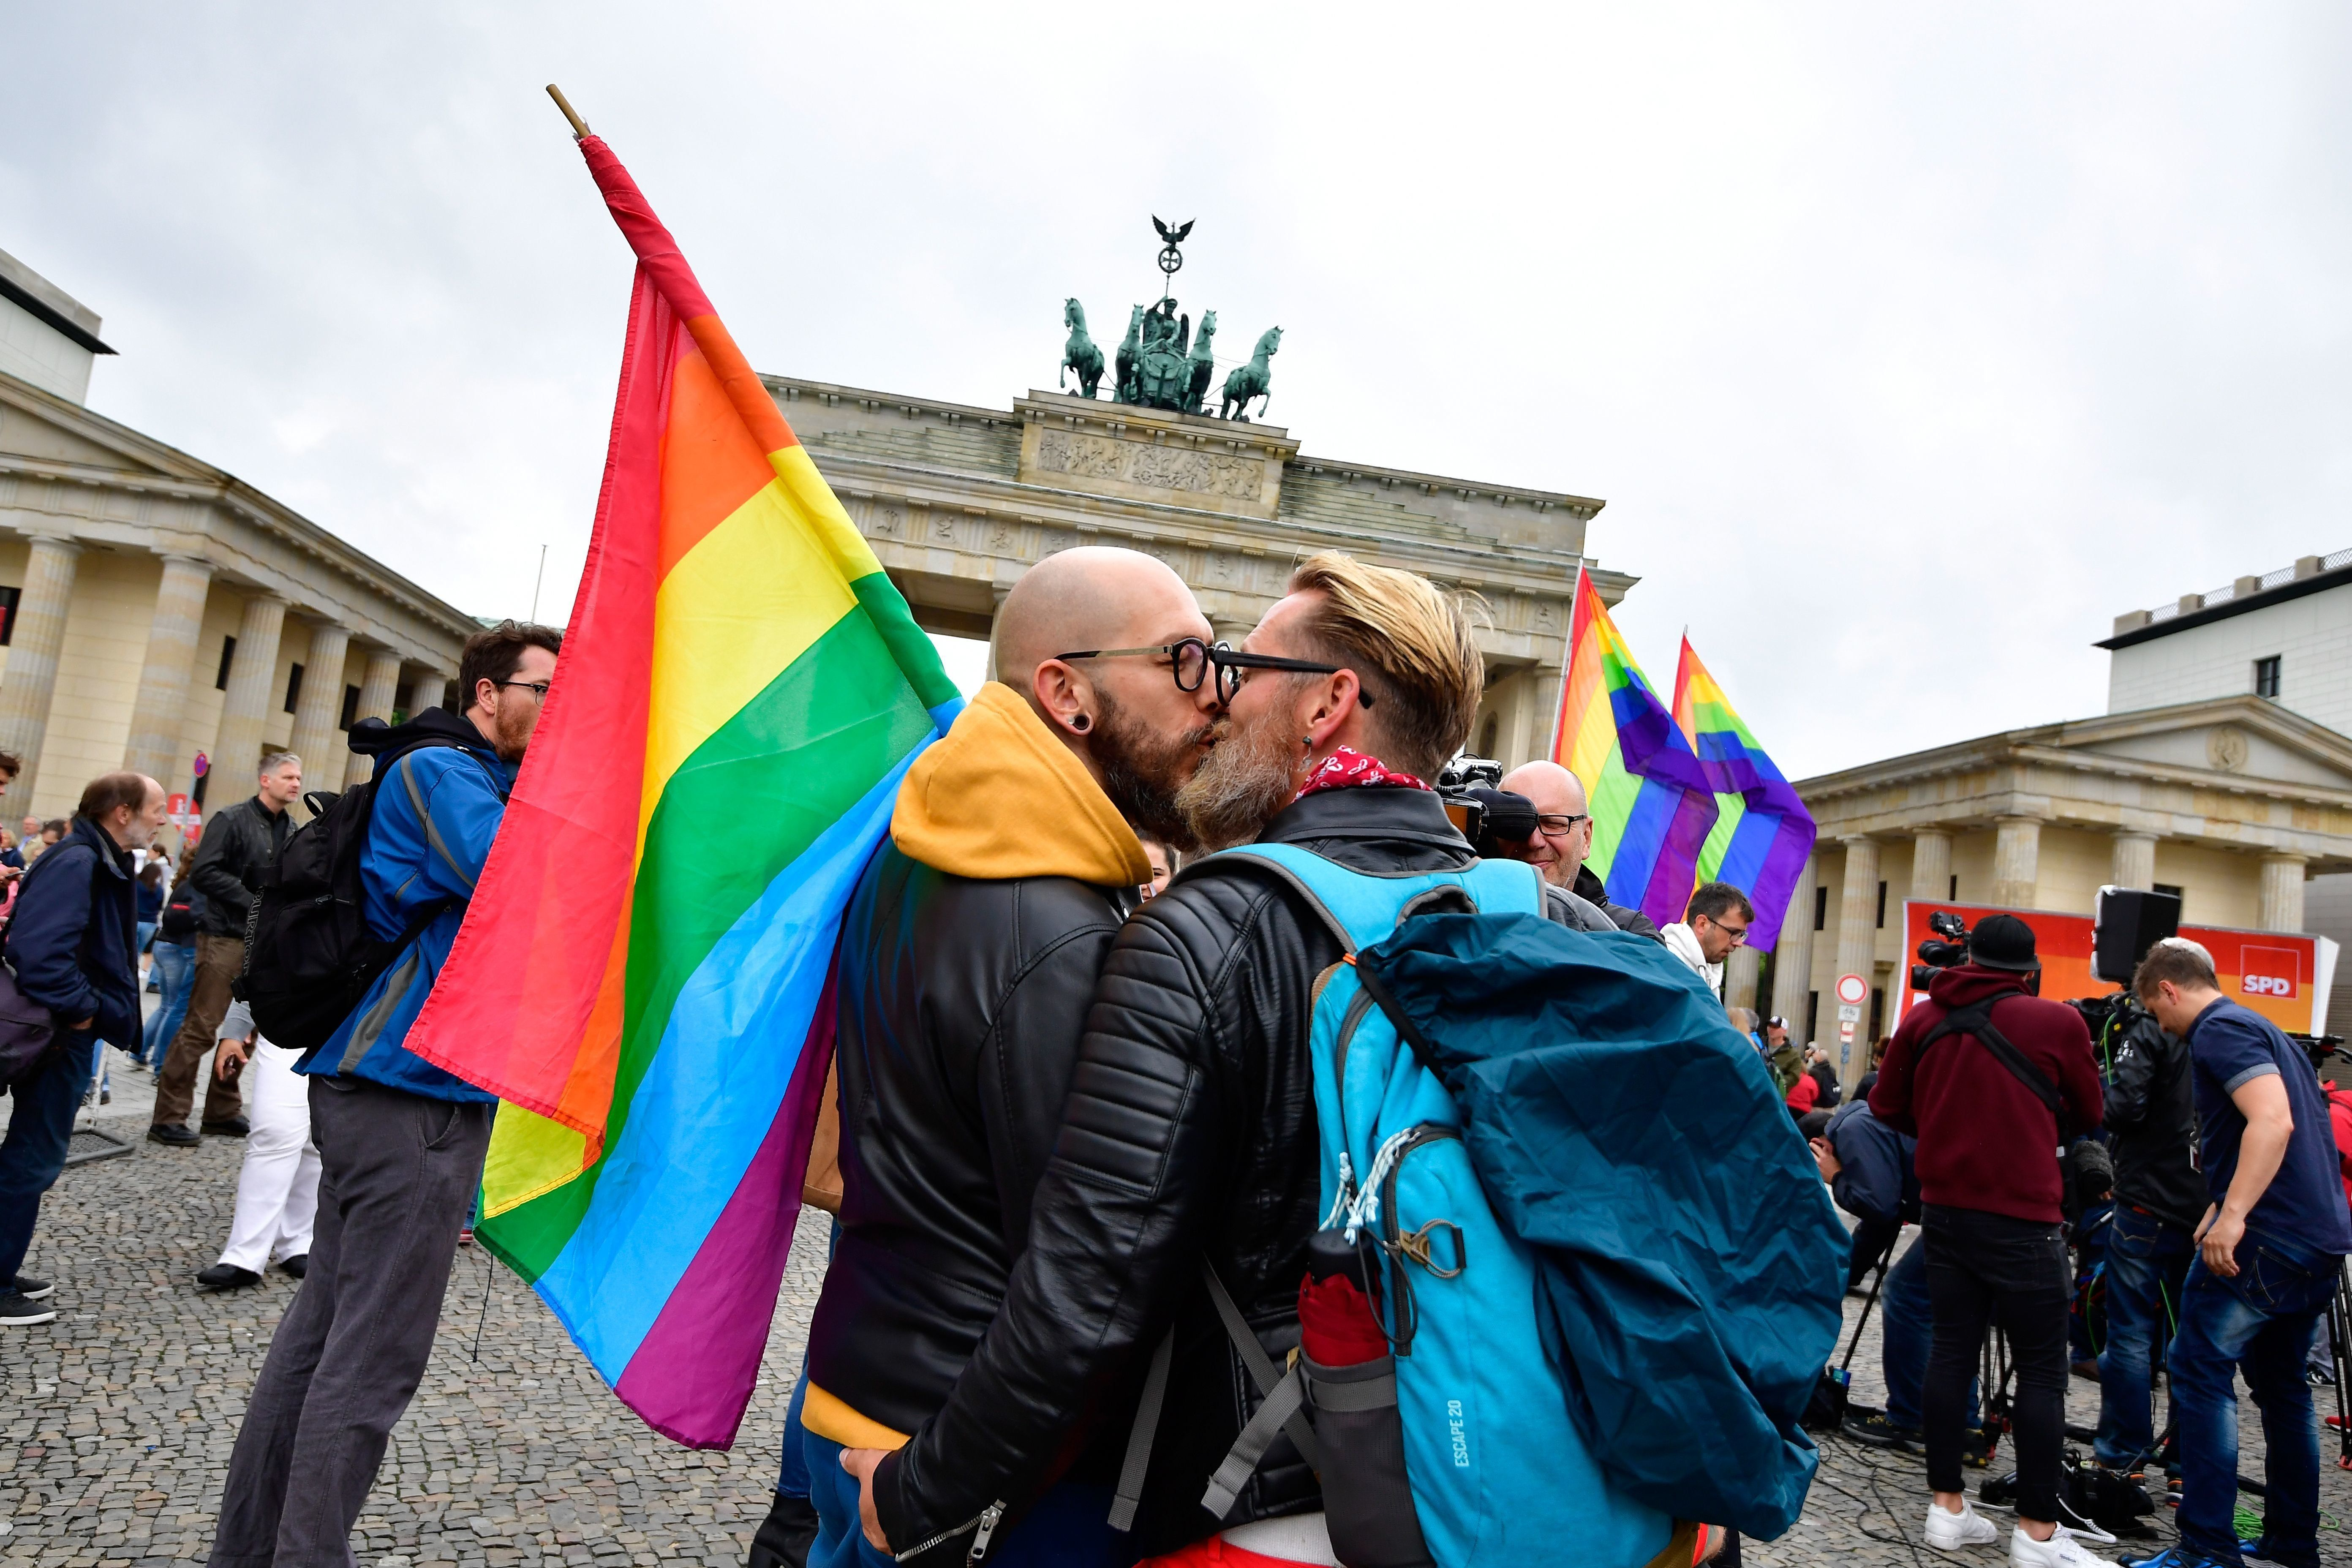 Two men kiss as they attend a rally of gays and lesbians in front of the Brandenburg Gate in Berlin on June 30, 2017. The German parliament legalised same-sex marriage, days after Chancellor Angela Merkel said she would allow her conservative lawmakers to follow their conscience in the vote. / AFP PHOTO / Tobias SCHWARZ        (Photo credit should read TOBIAS SCHWARZ/AFP/Getty Images)